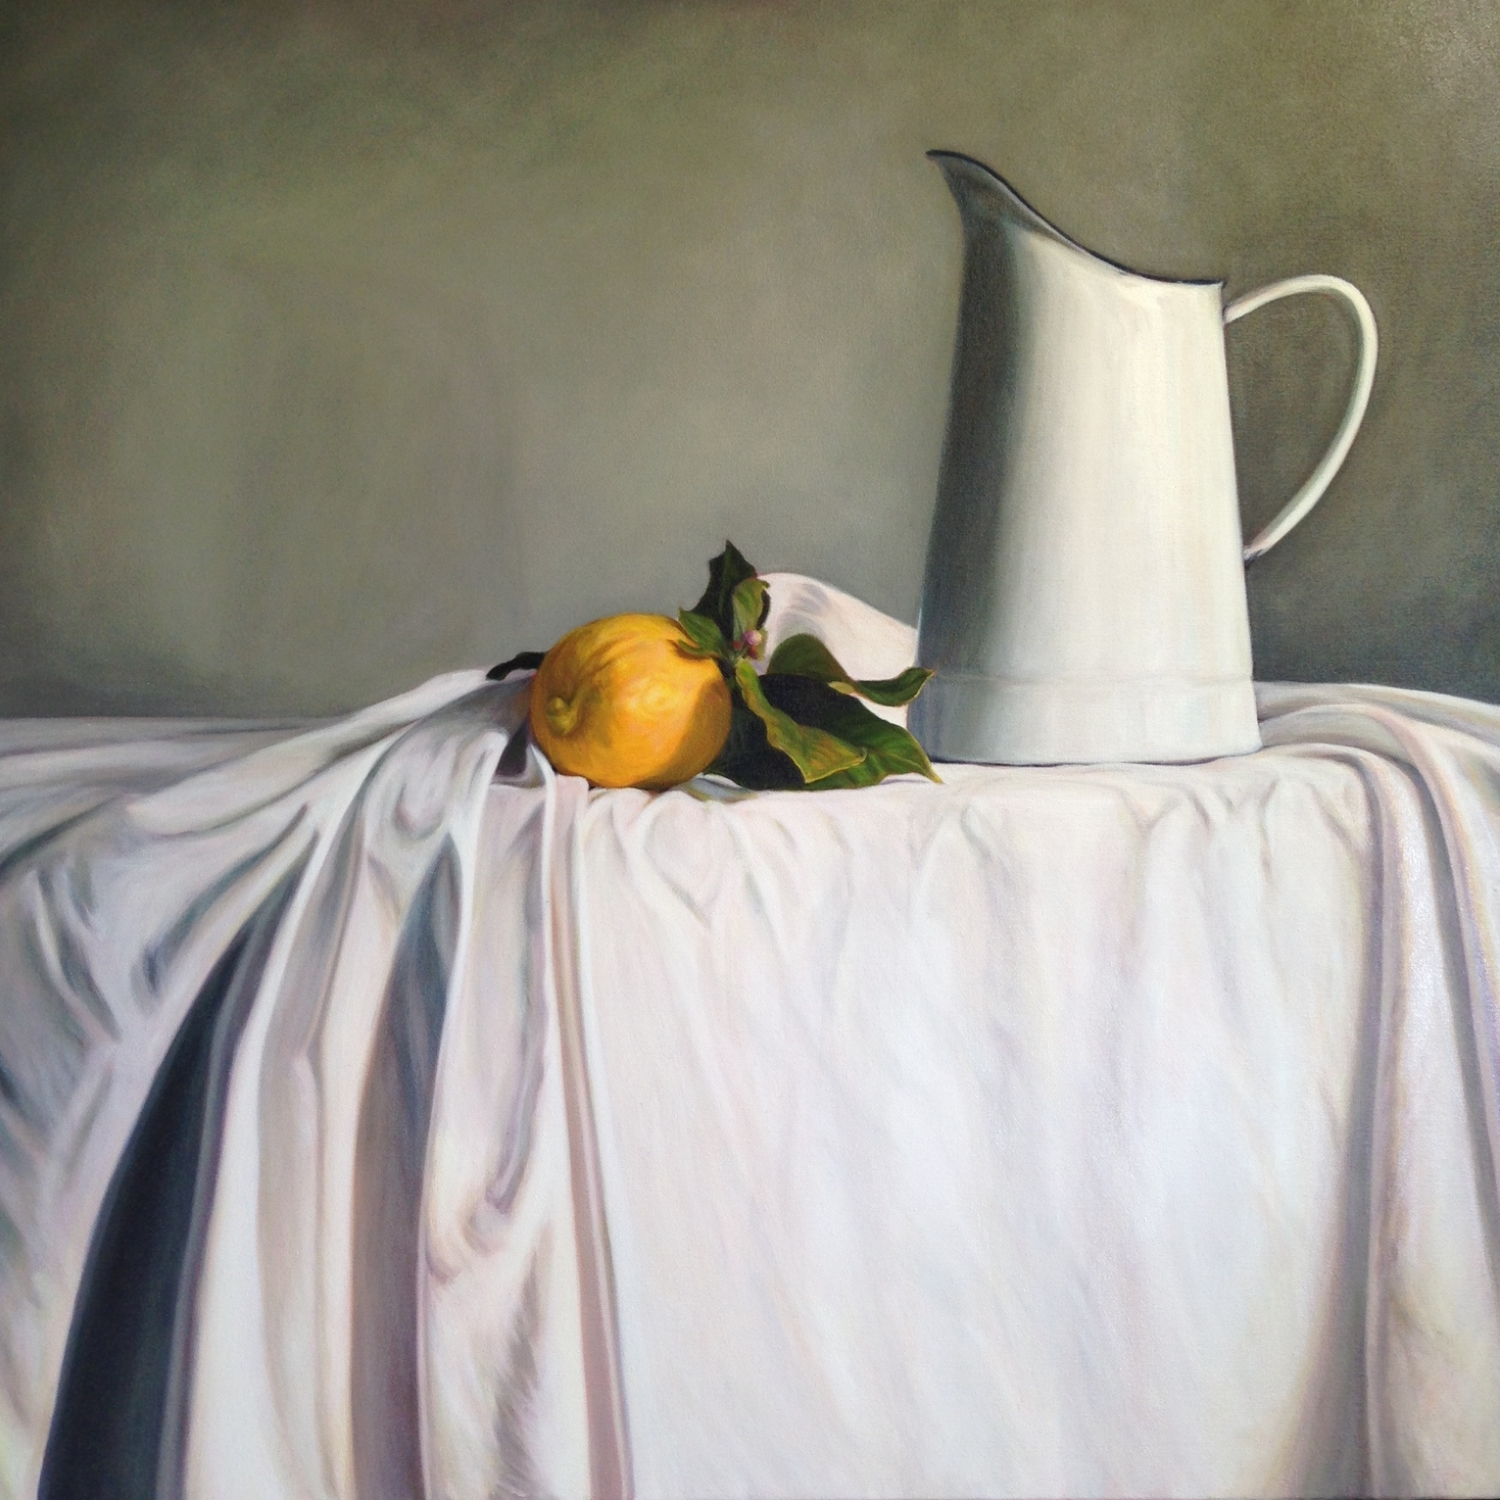 White Jug and Lemon   Oil on Canvas, 84 x 84 cm